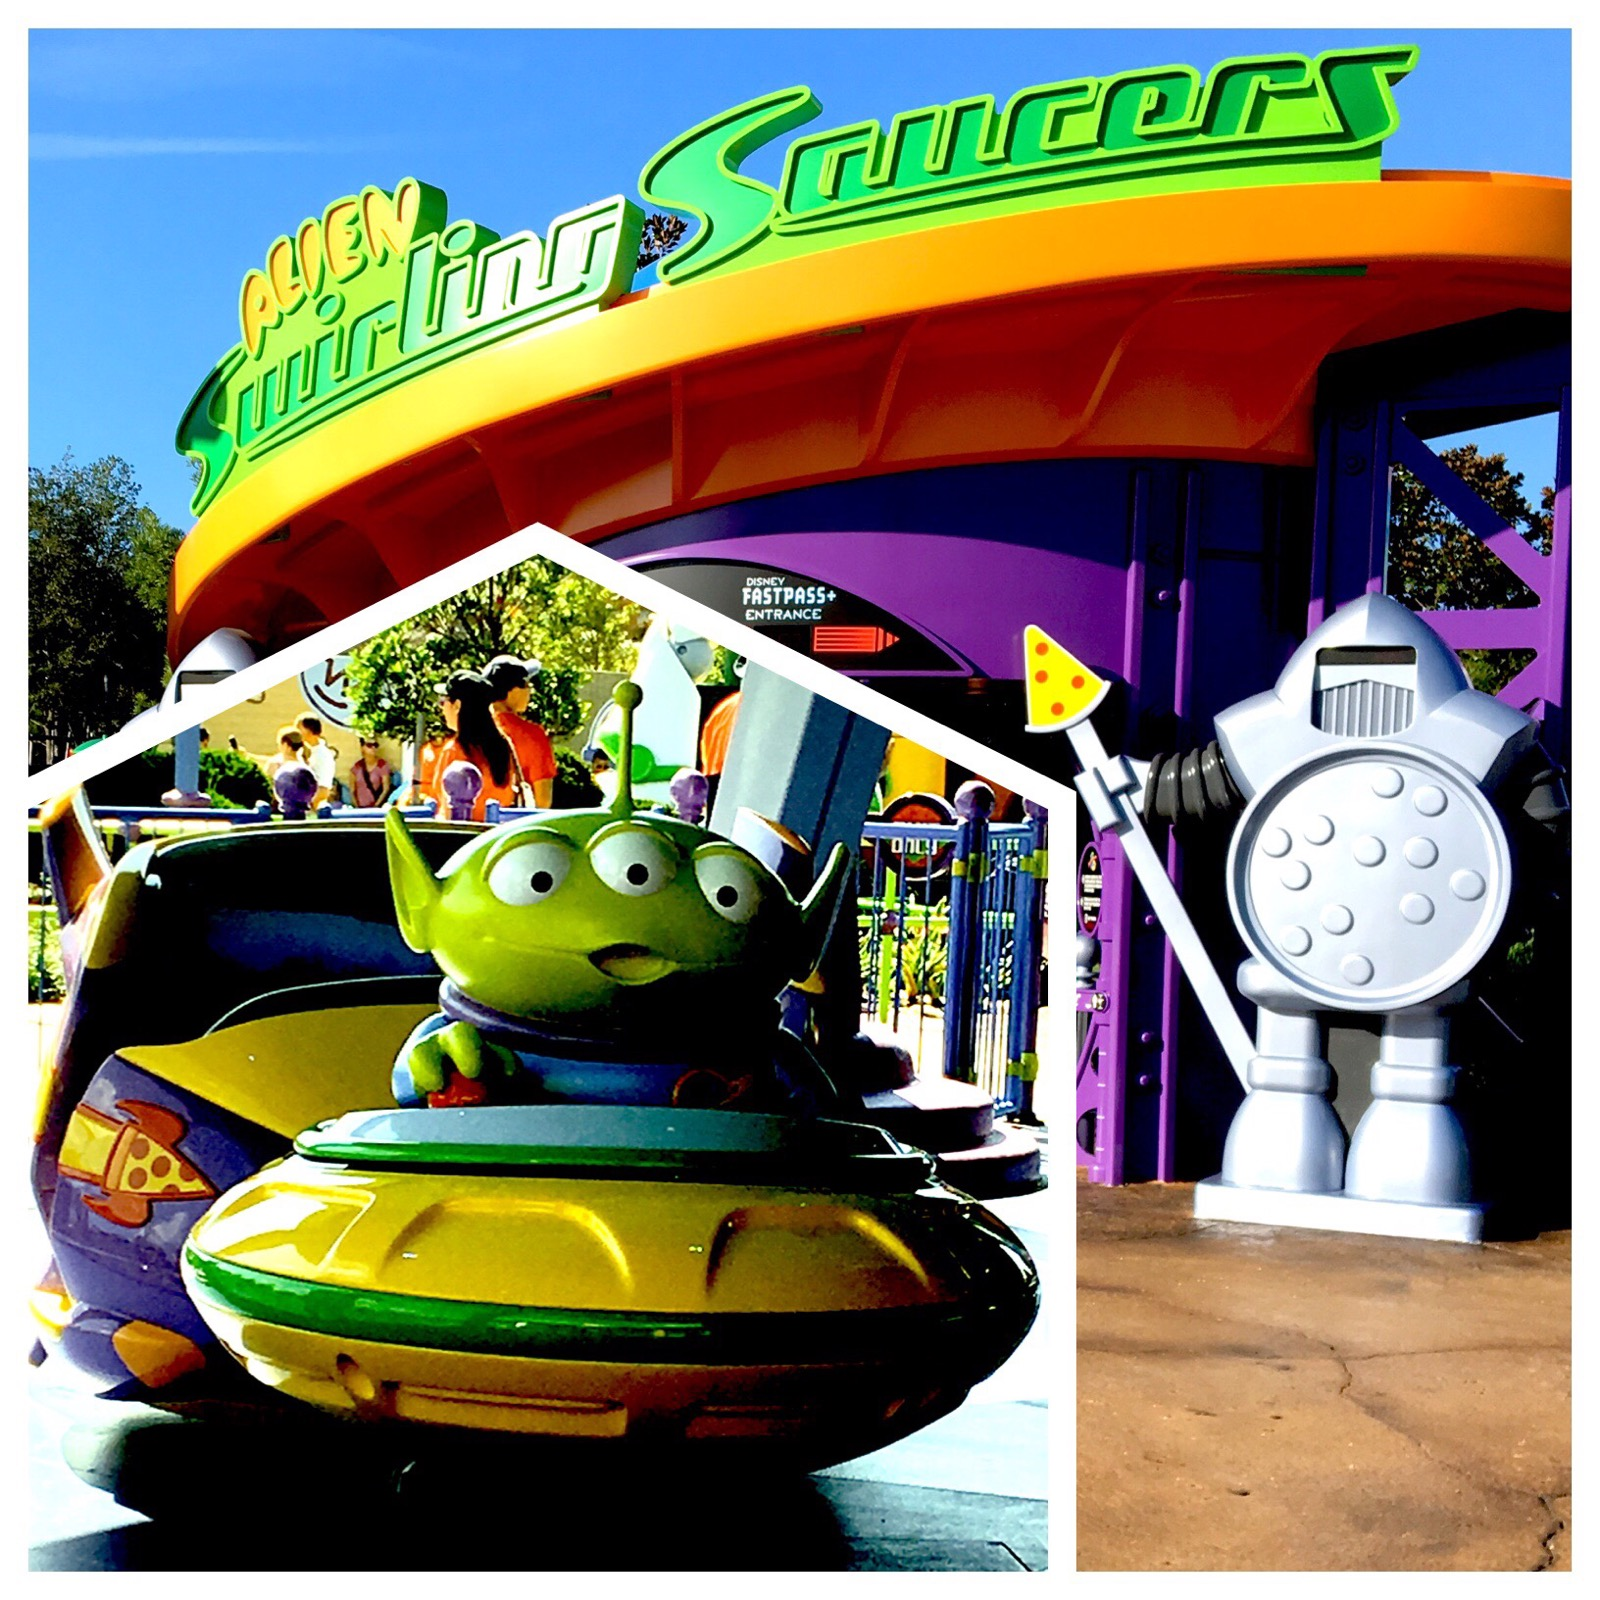 Alien Swirling Saucers at Toy Story Land in Disney's Hollywood Studios / Walt Disney World Resort - Florida.